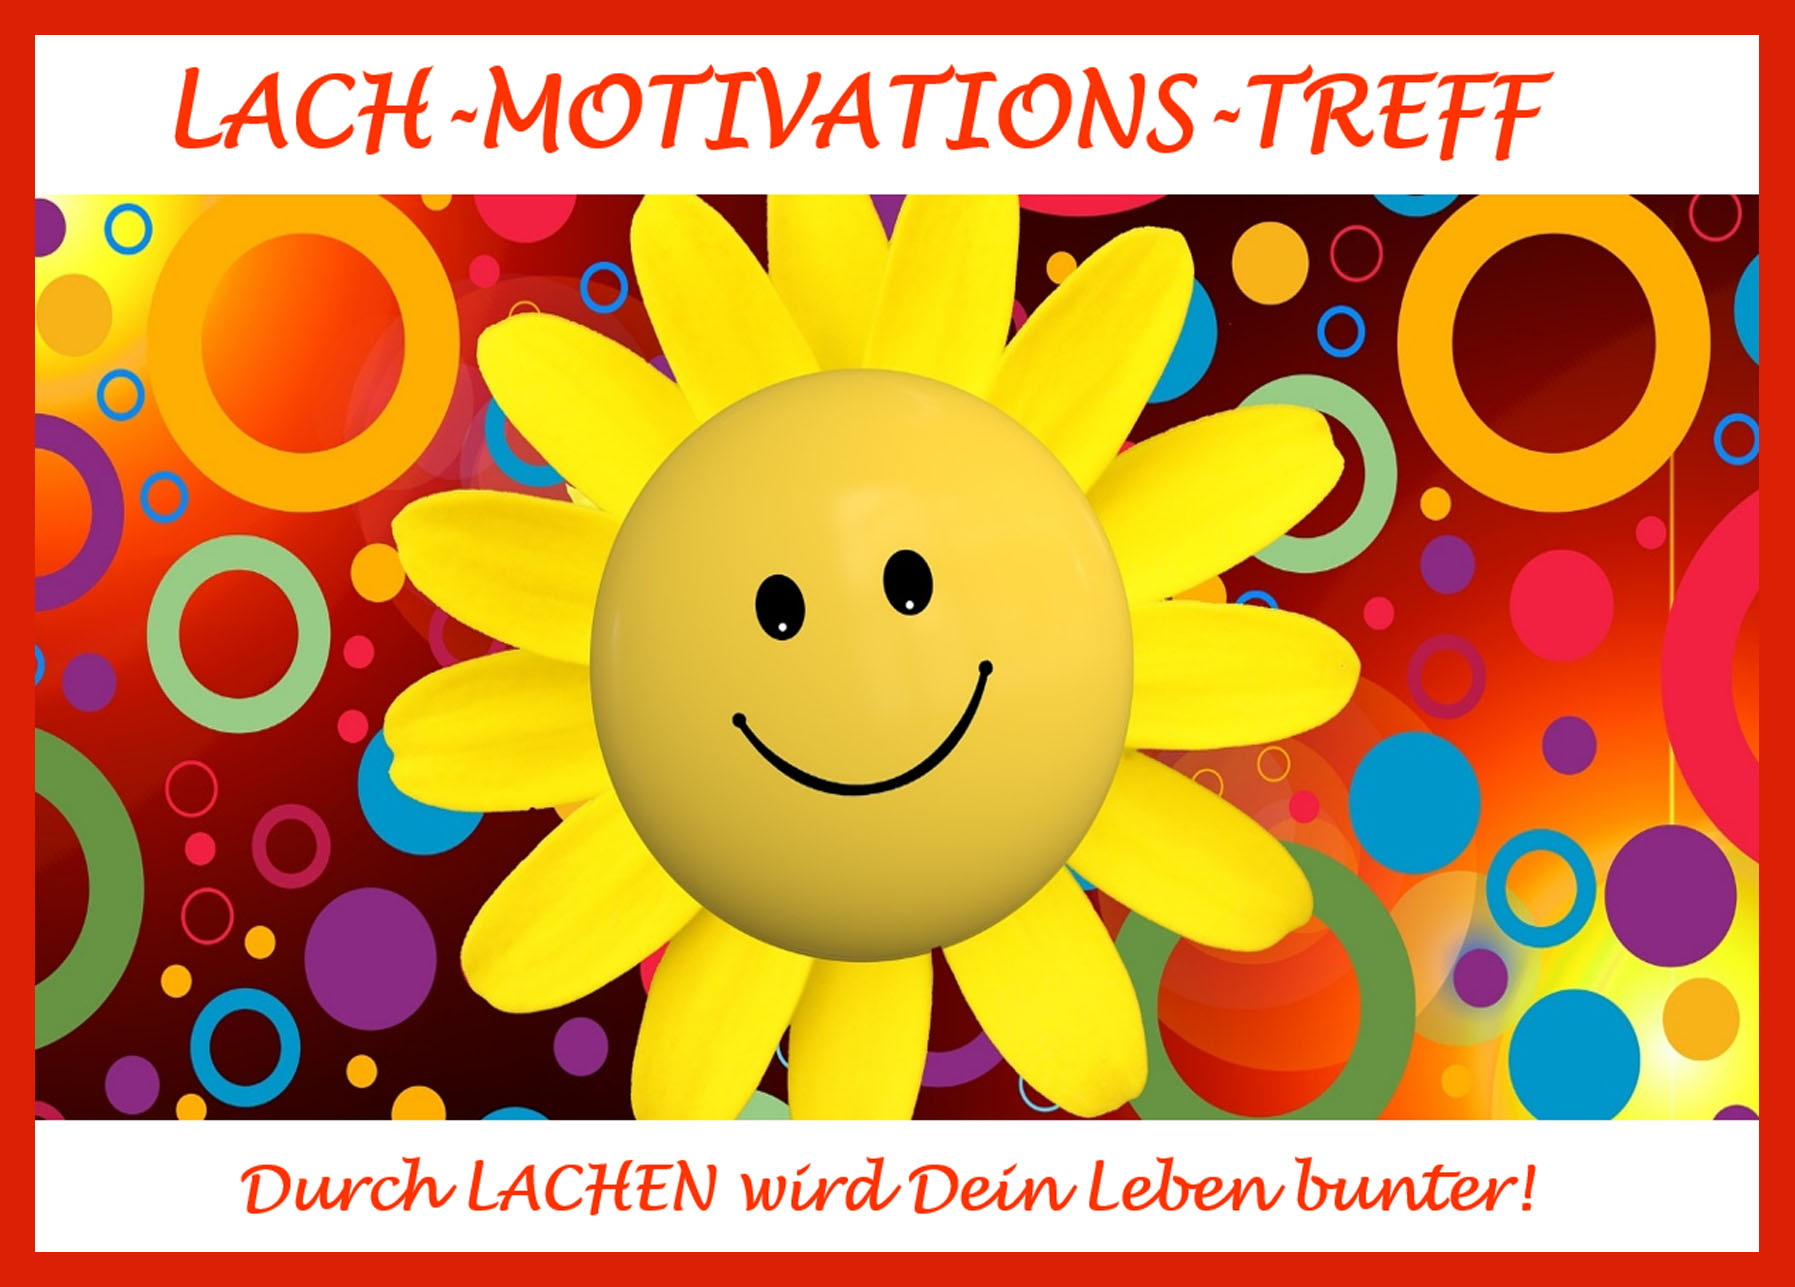 Lach-Motivations-Treff-Vorderseite